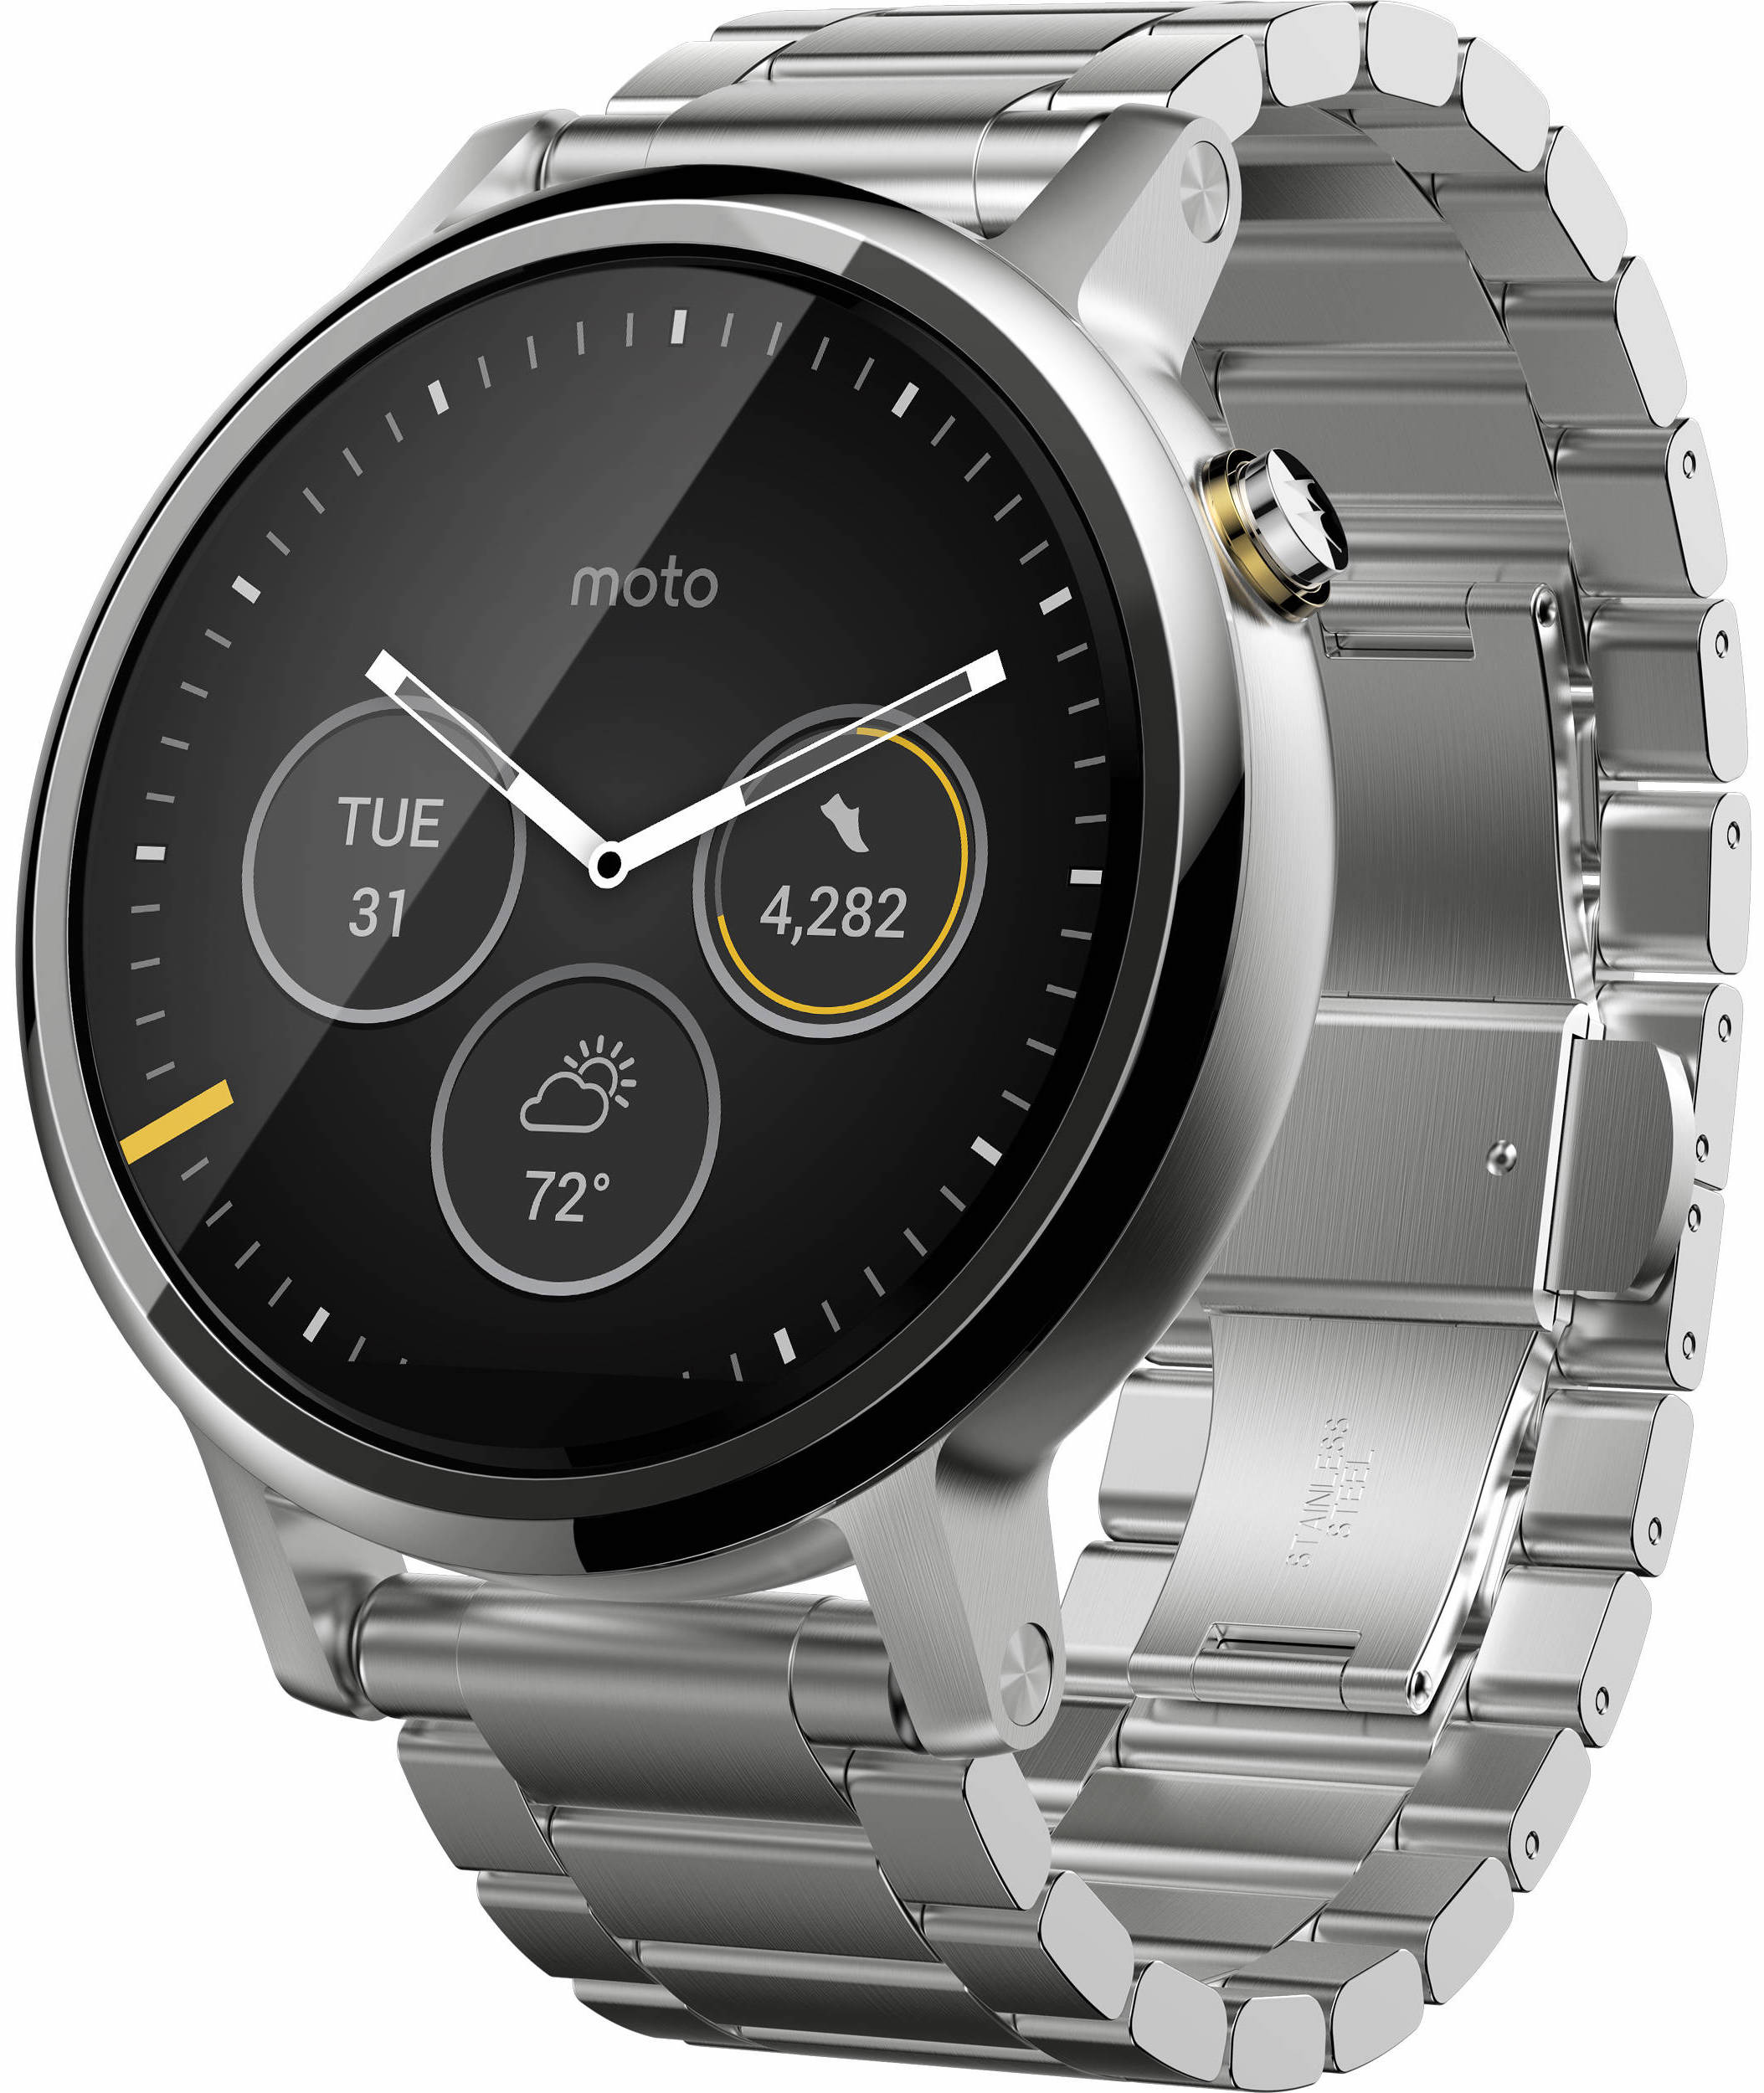 Offerta Motorola Moto 360 2nd Gen 46mm su TrovaUsati.it